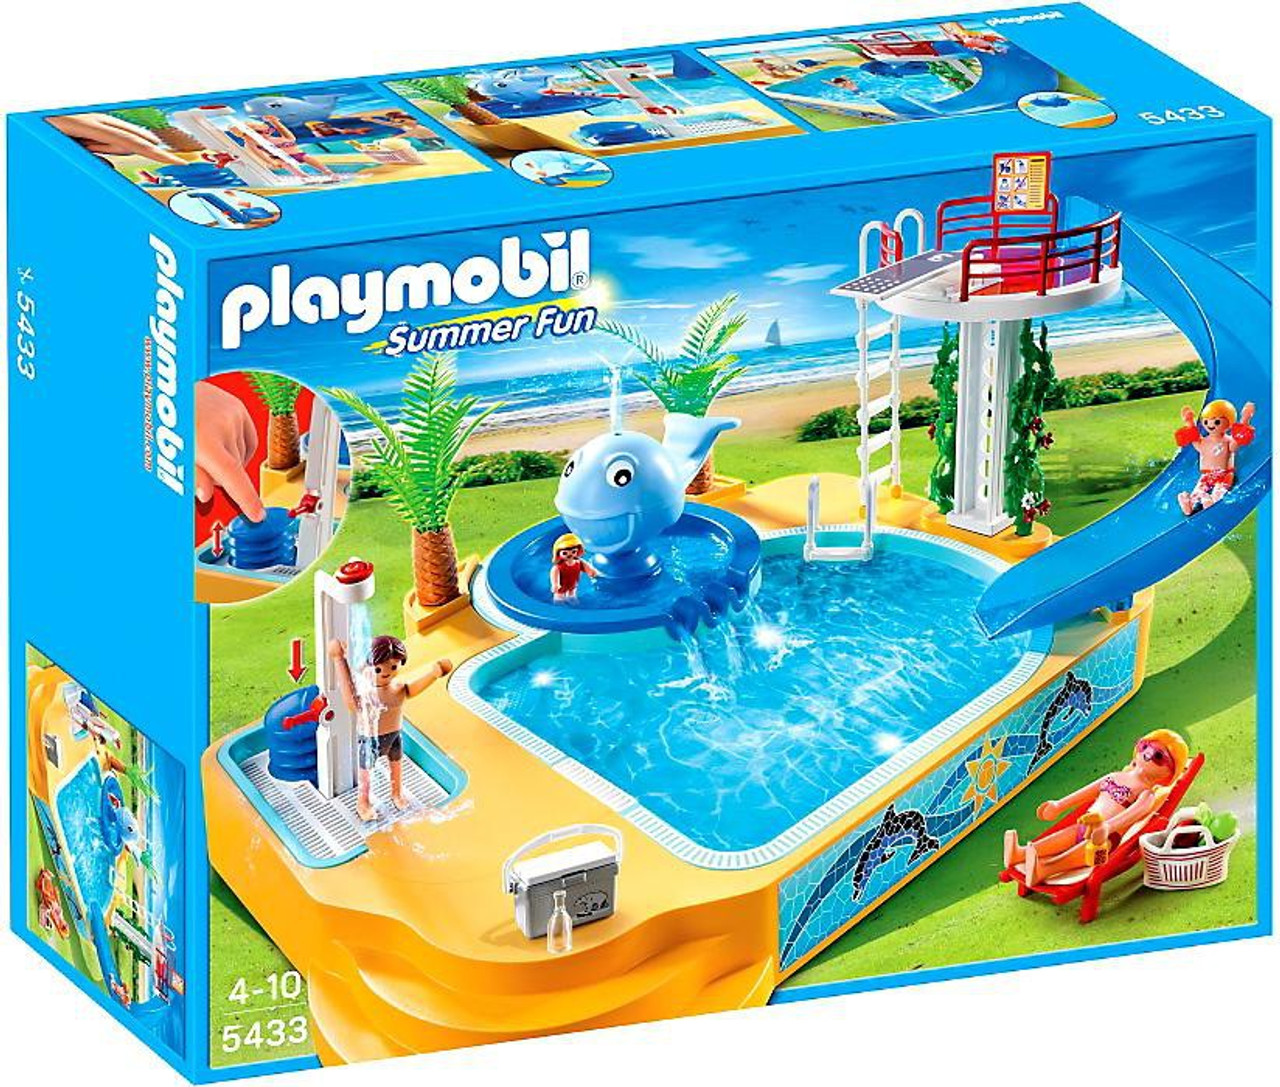 Playmobil summer fun childrens pool with whale fountain for Piscine playmobil